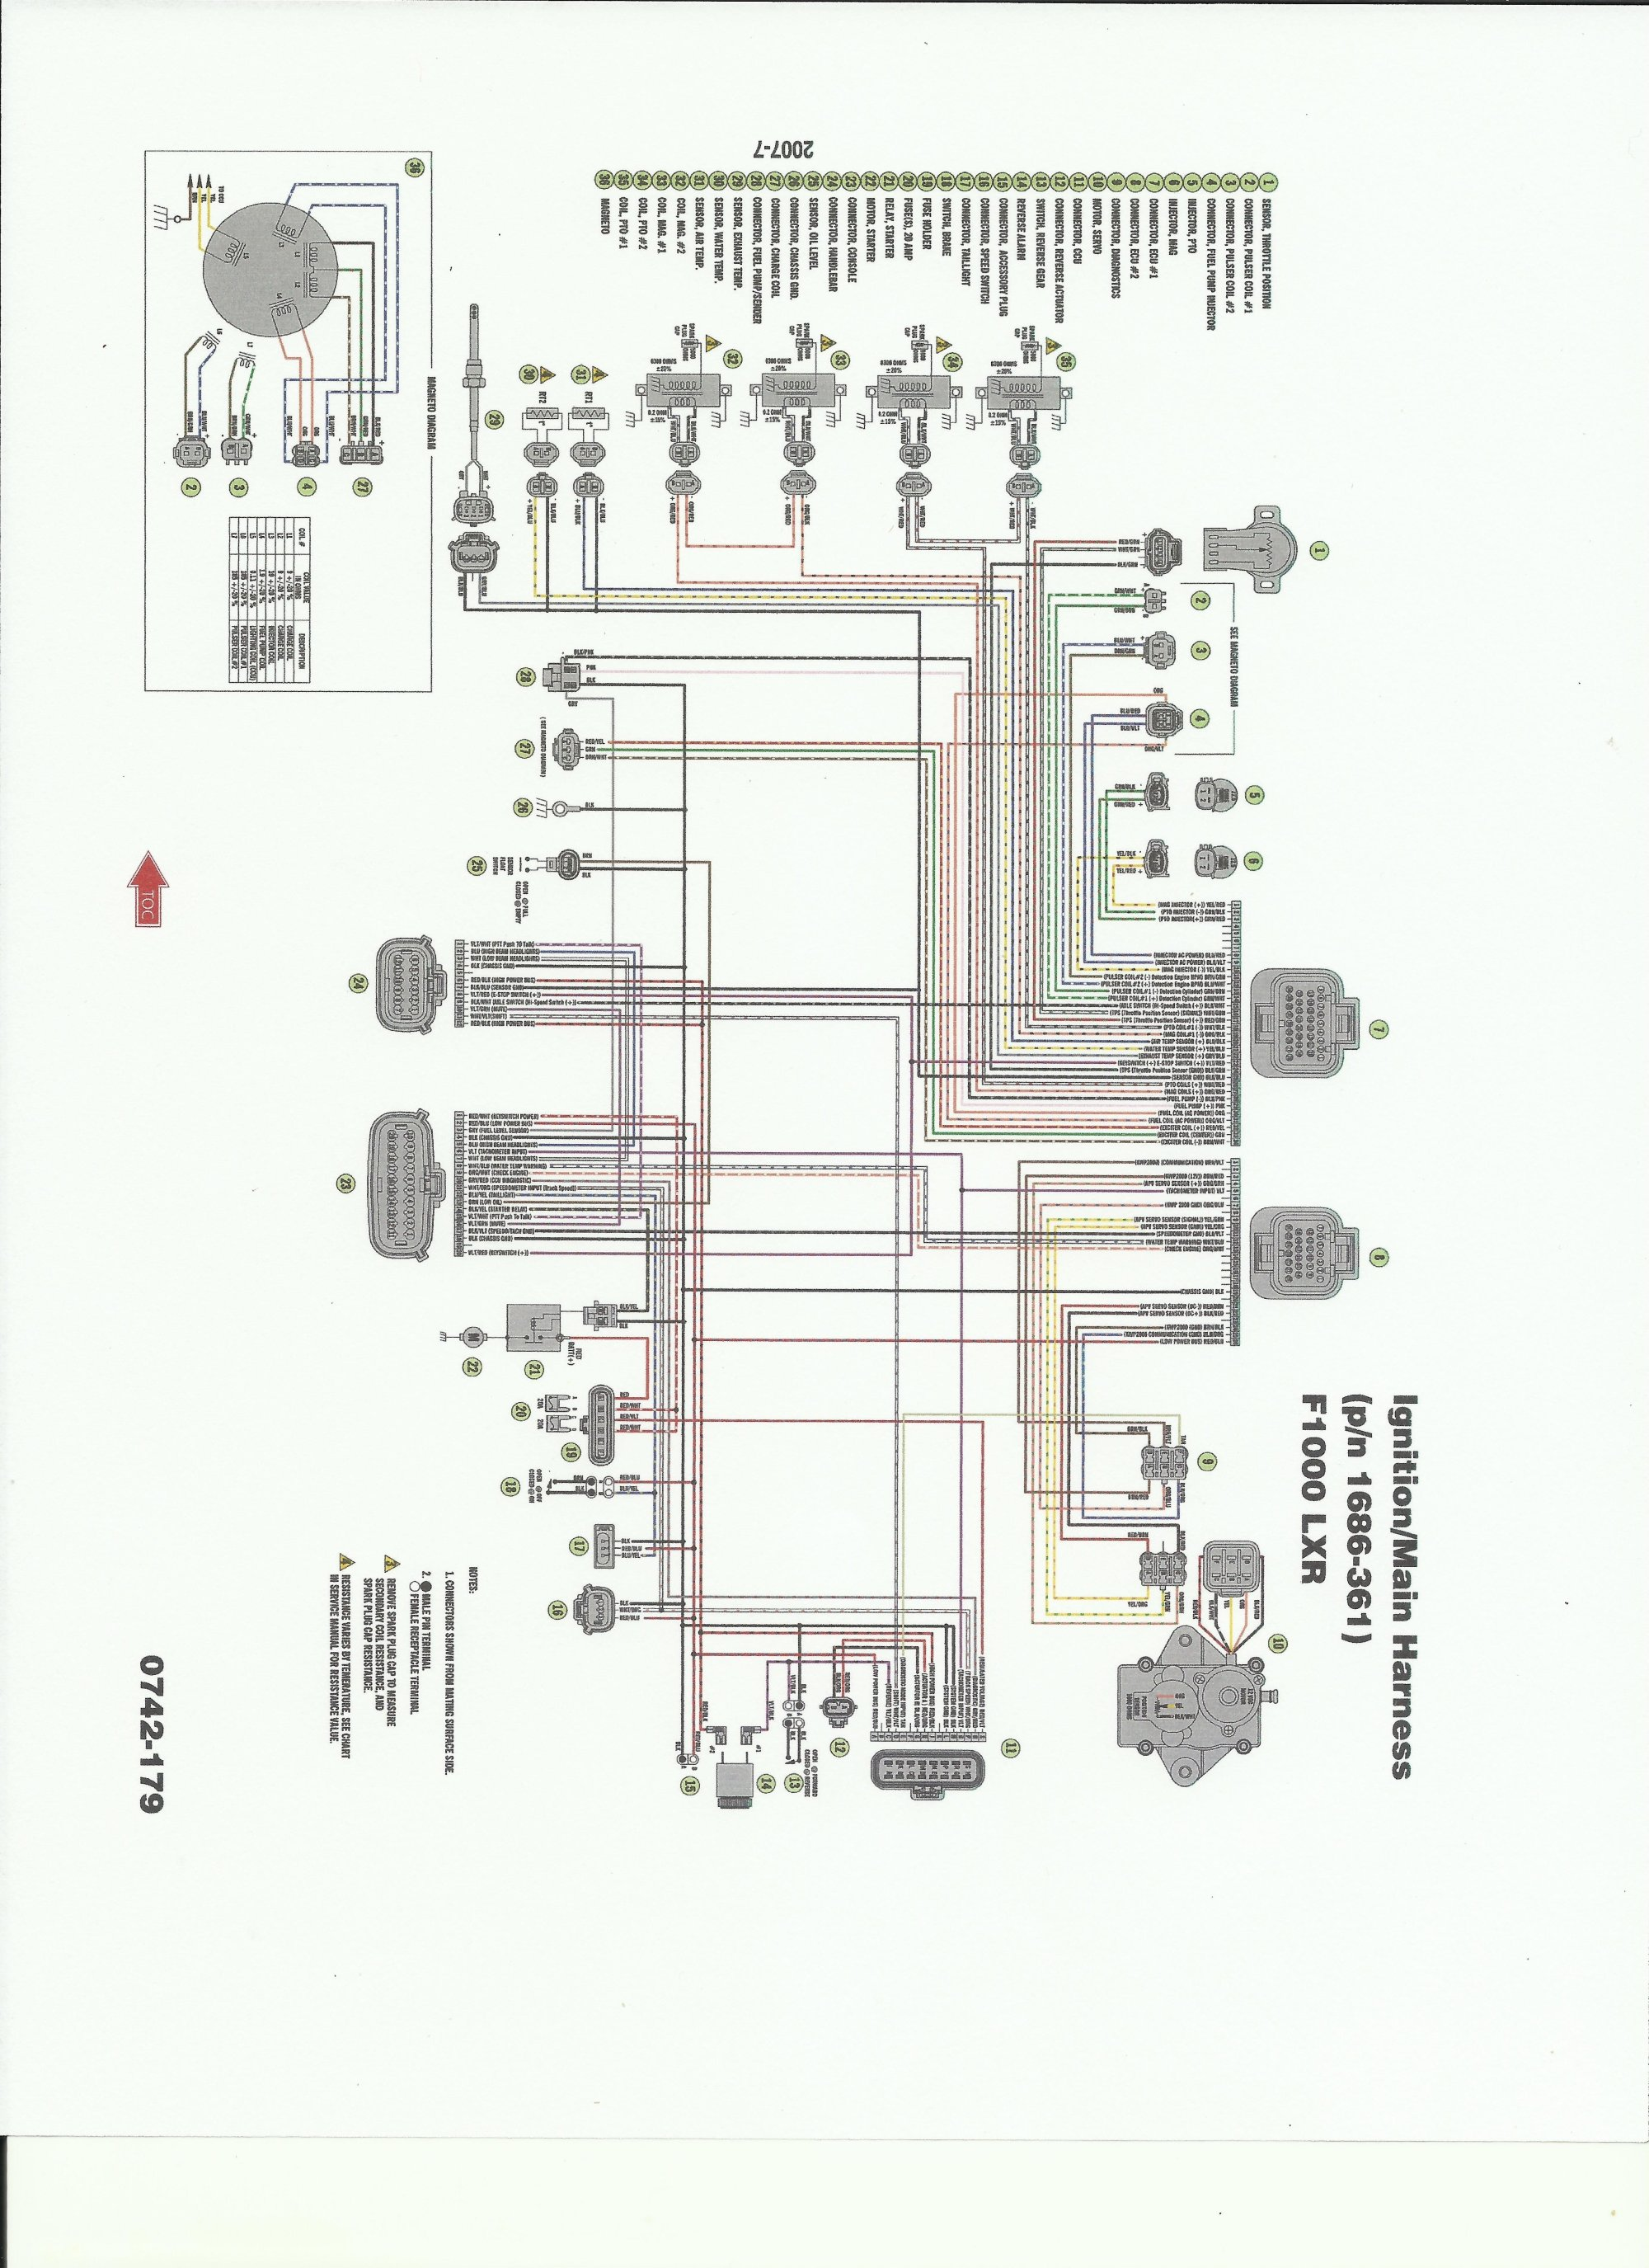 hight resolution of 2004 arctic cat wiring diagram wiring diagrams scematic rh 57 jessicadonath de arctic cat 400 wiring diagram arctic cat 300 wiring diagram